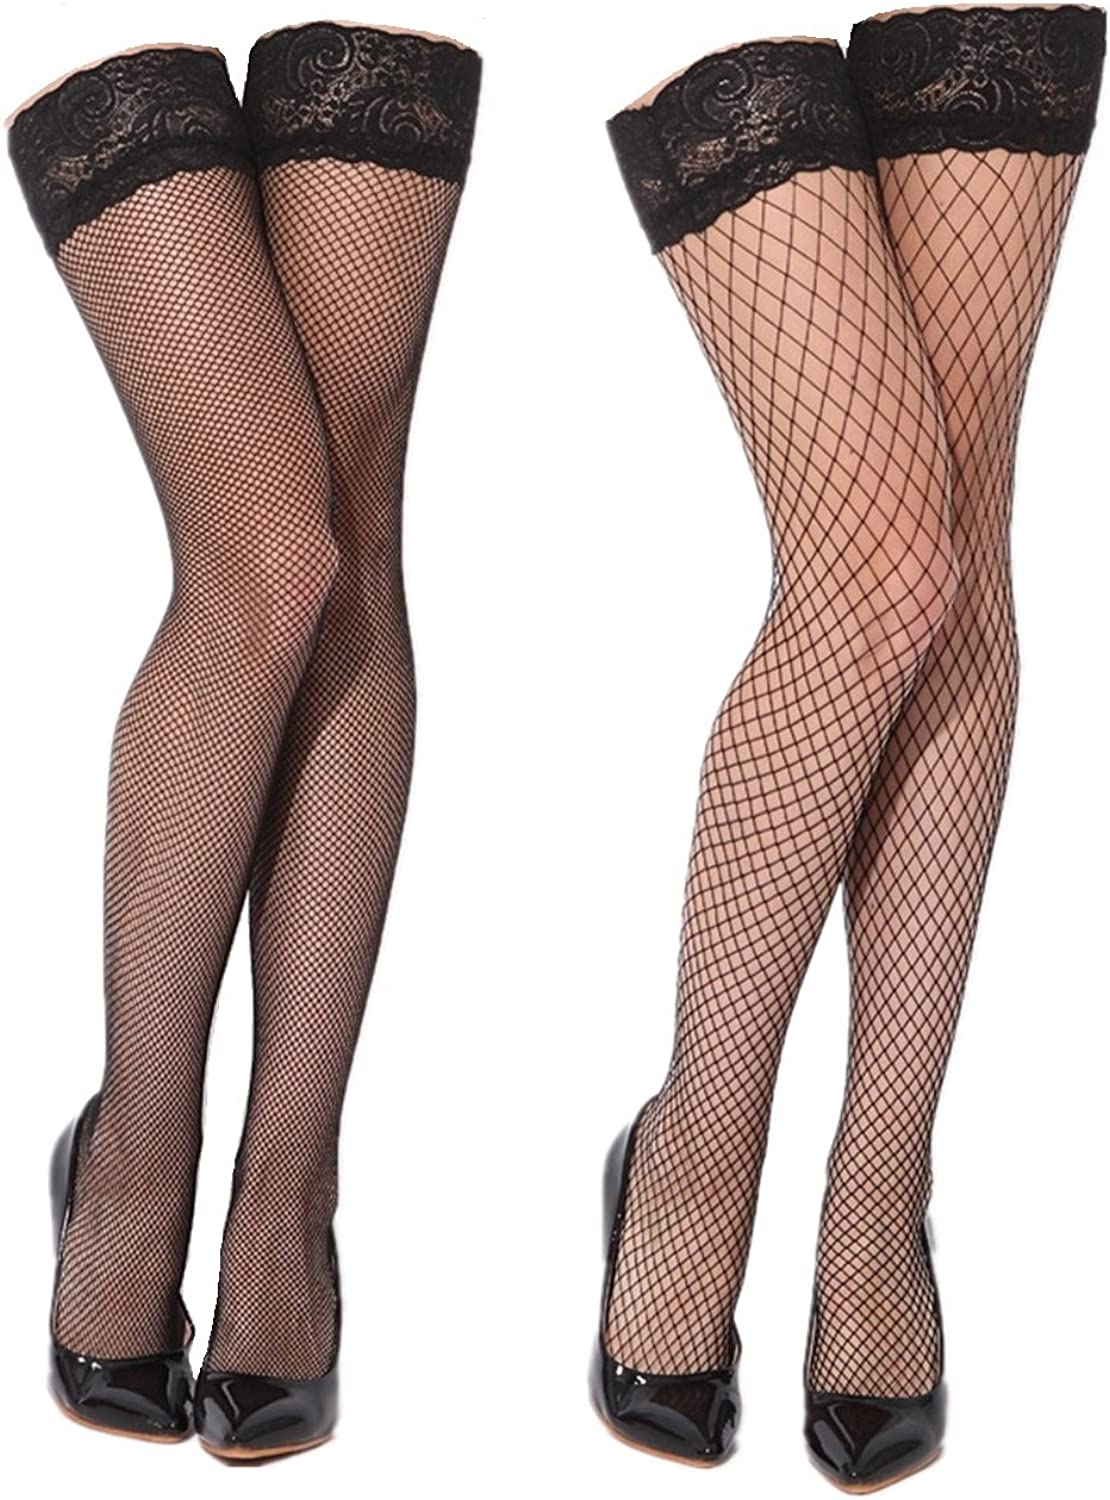 Womens Black Sheer Thigh High Fishnet Stockings with Silicone Lace Top 2 Pairs